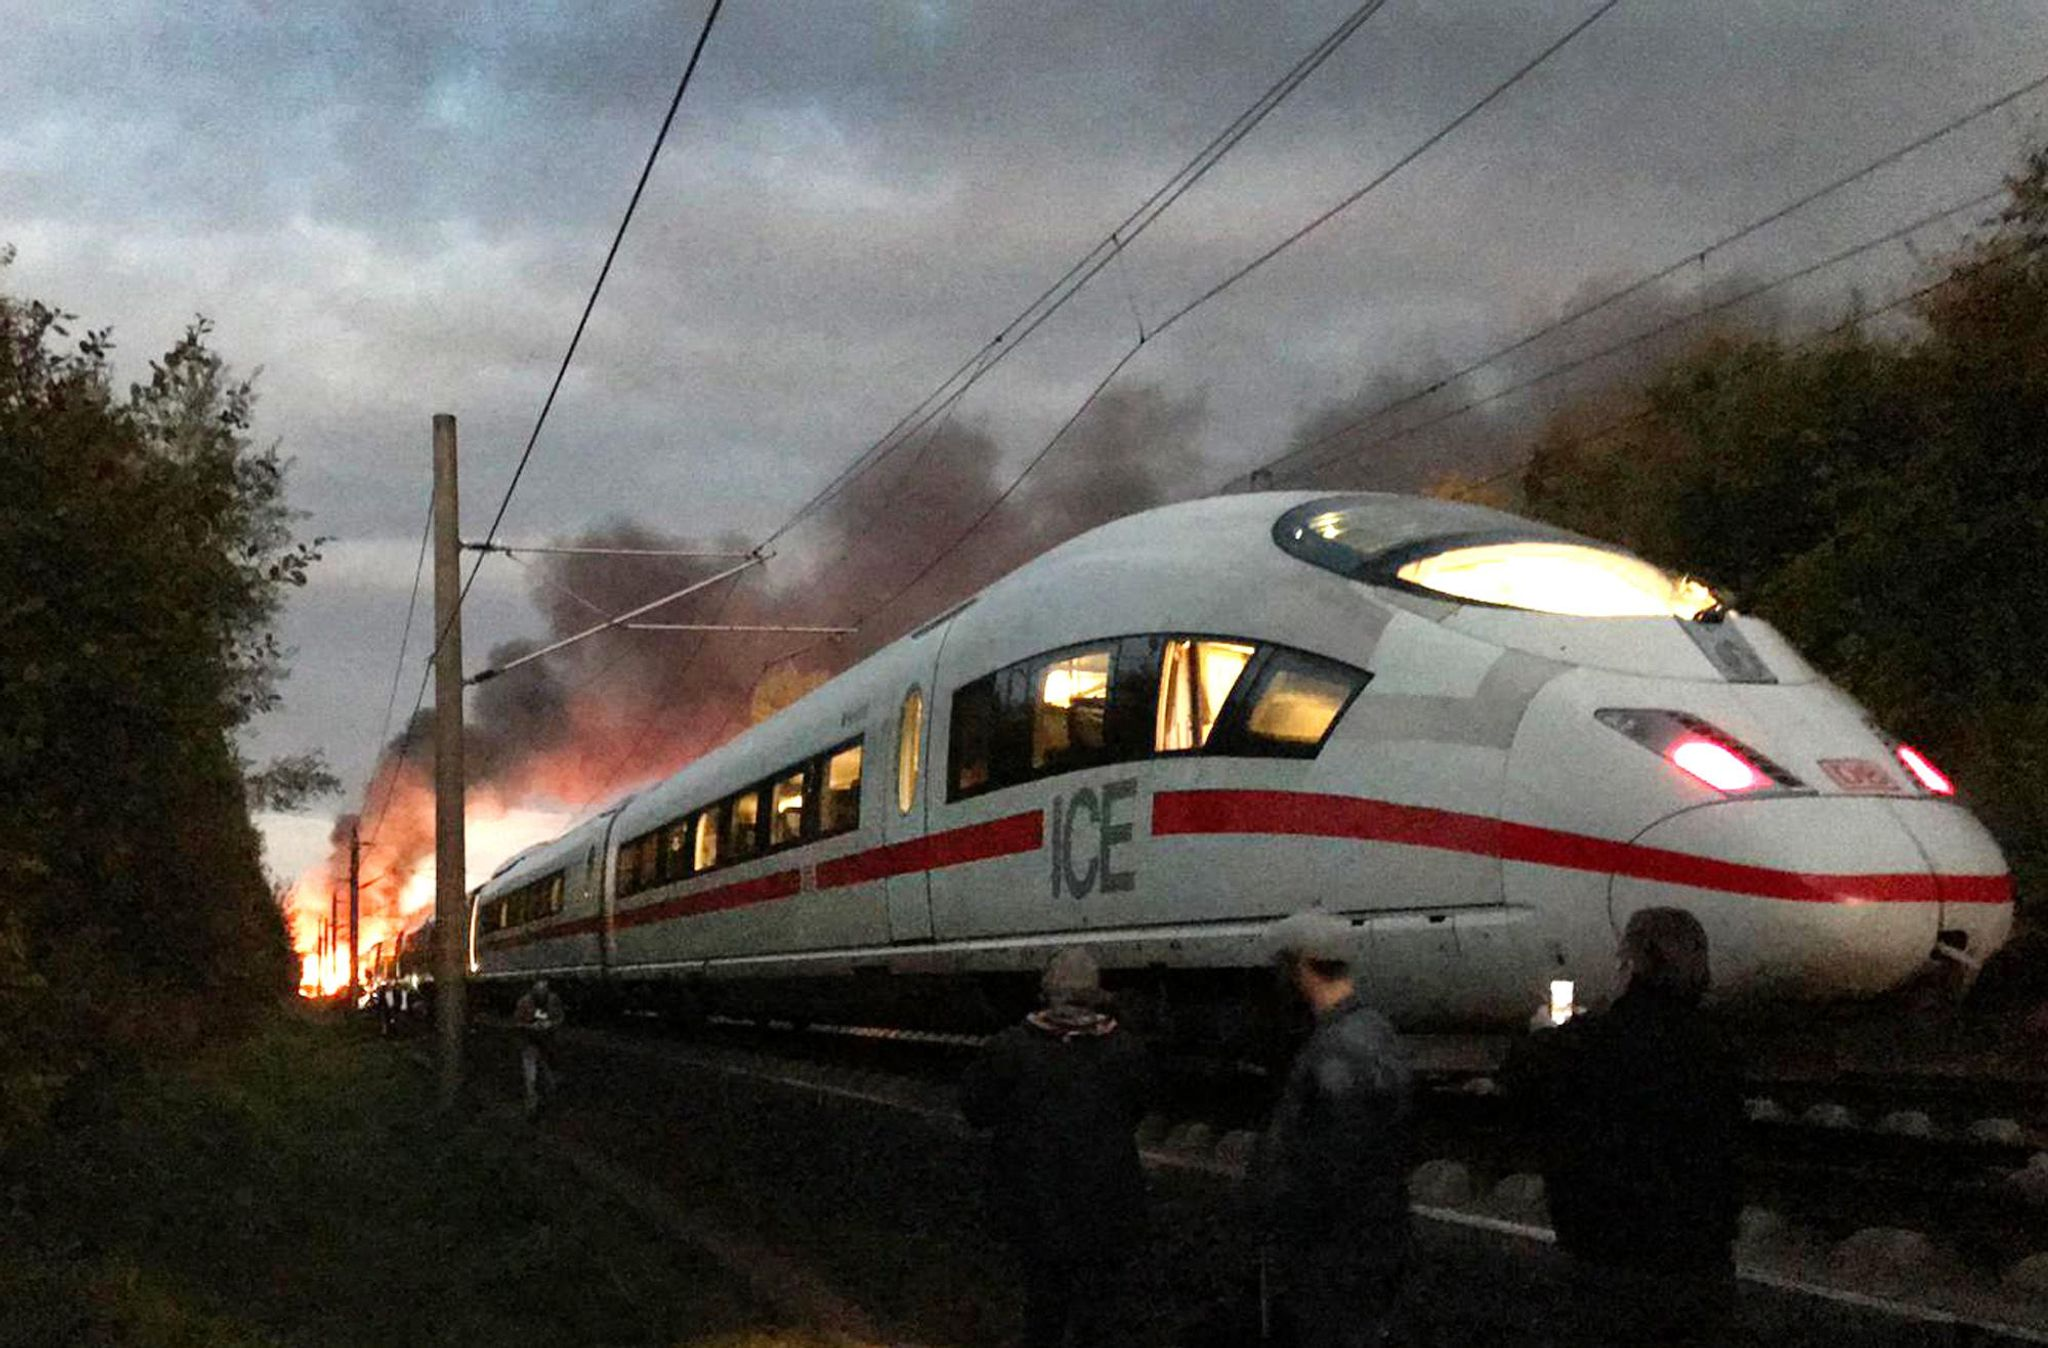 Train catches fire in southern Germany; no injuries